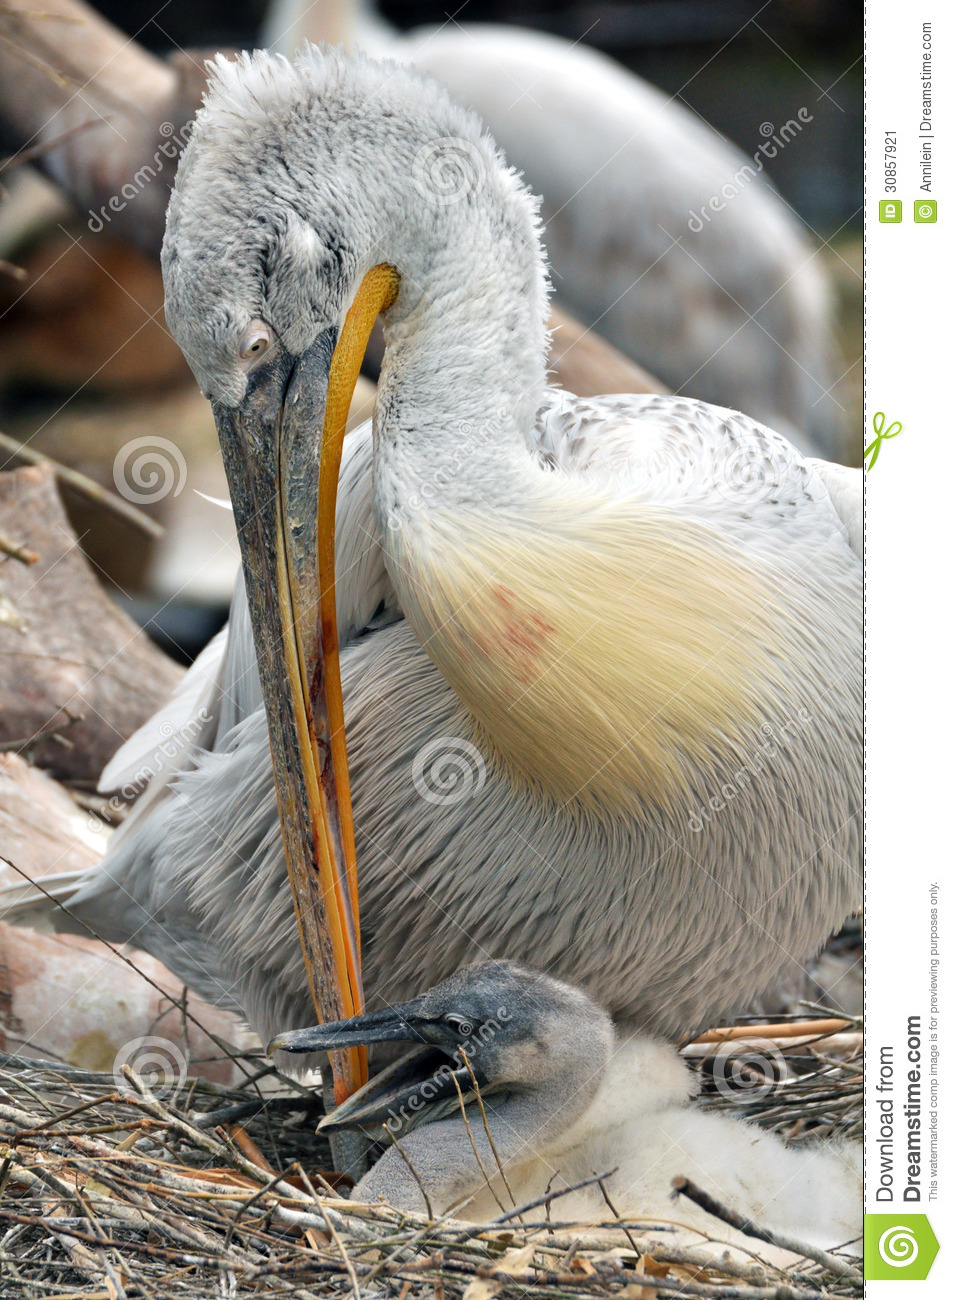 Pelican with a chick